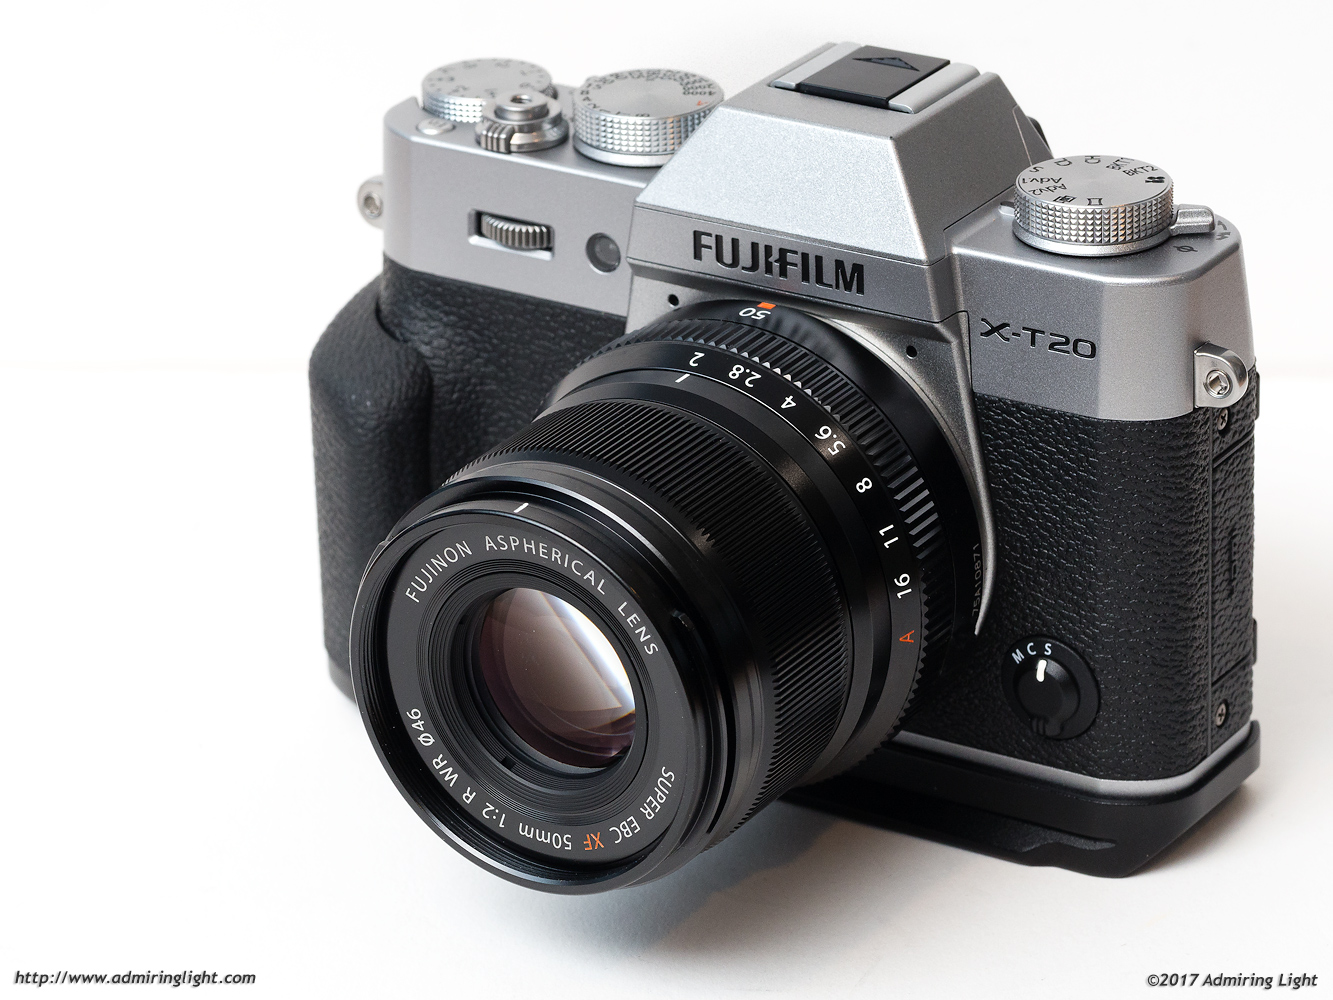 The Fuji XF 50mm f/2 R WR on the Fuji X-T20